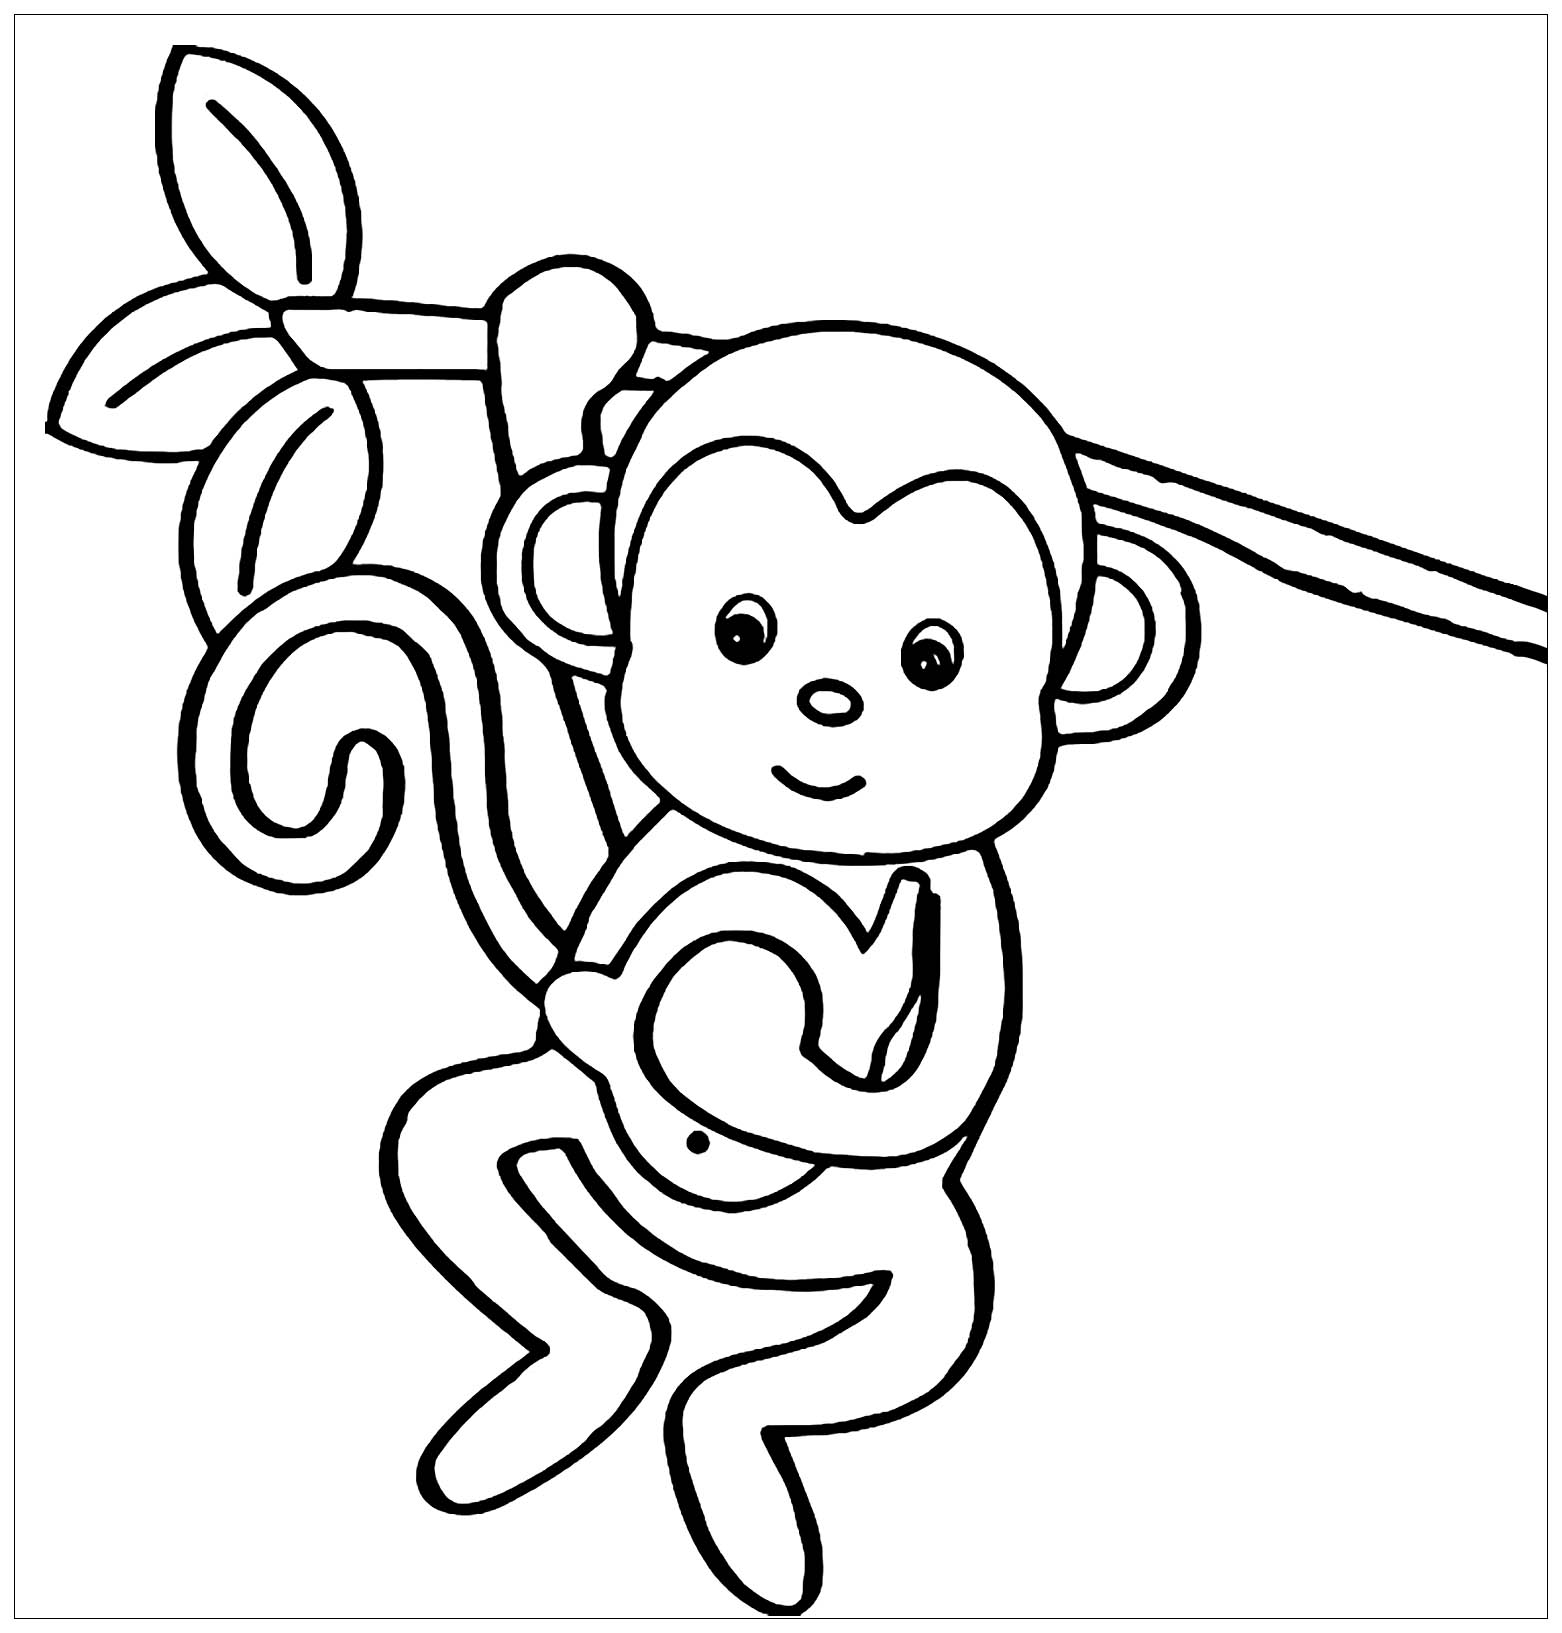 monkey coloring monkeys to color for children monkeys kids coloring pages monkey coloring